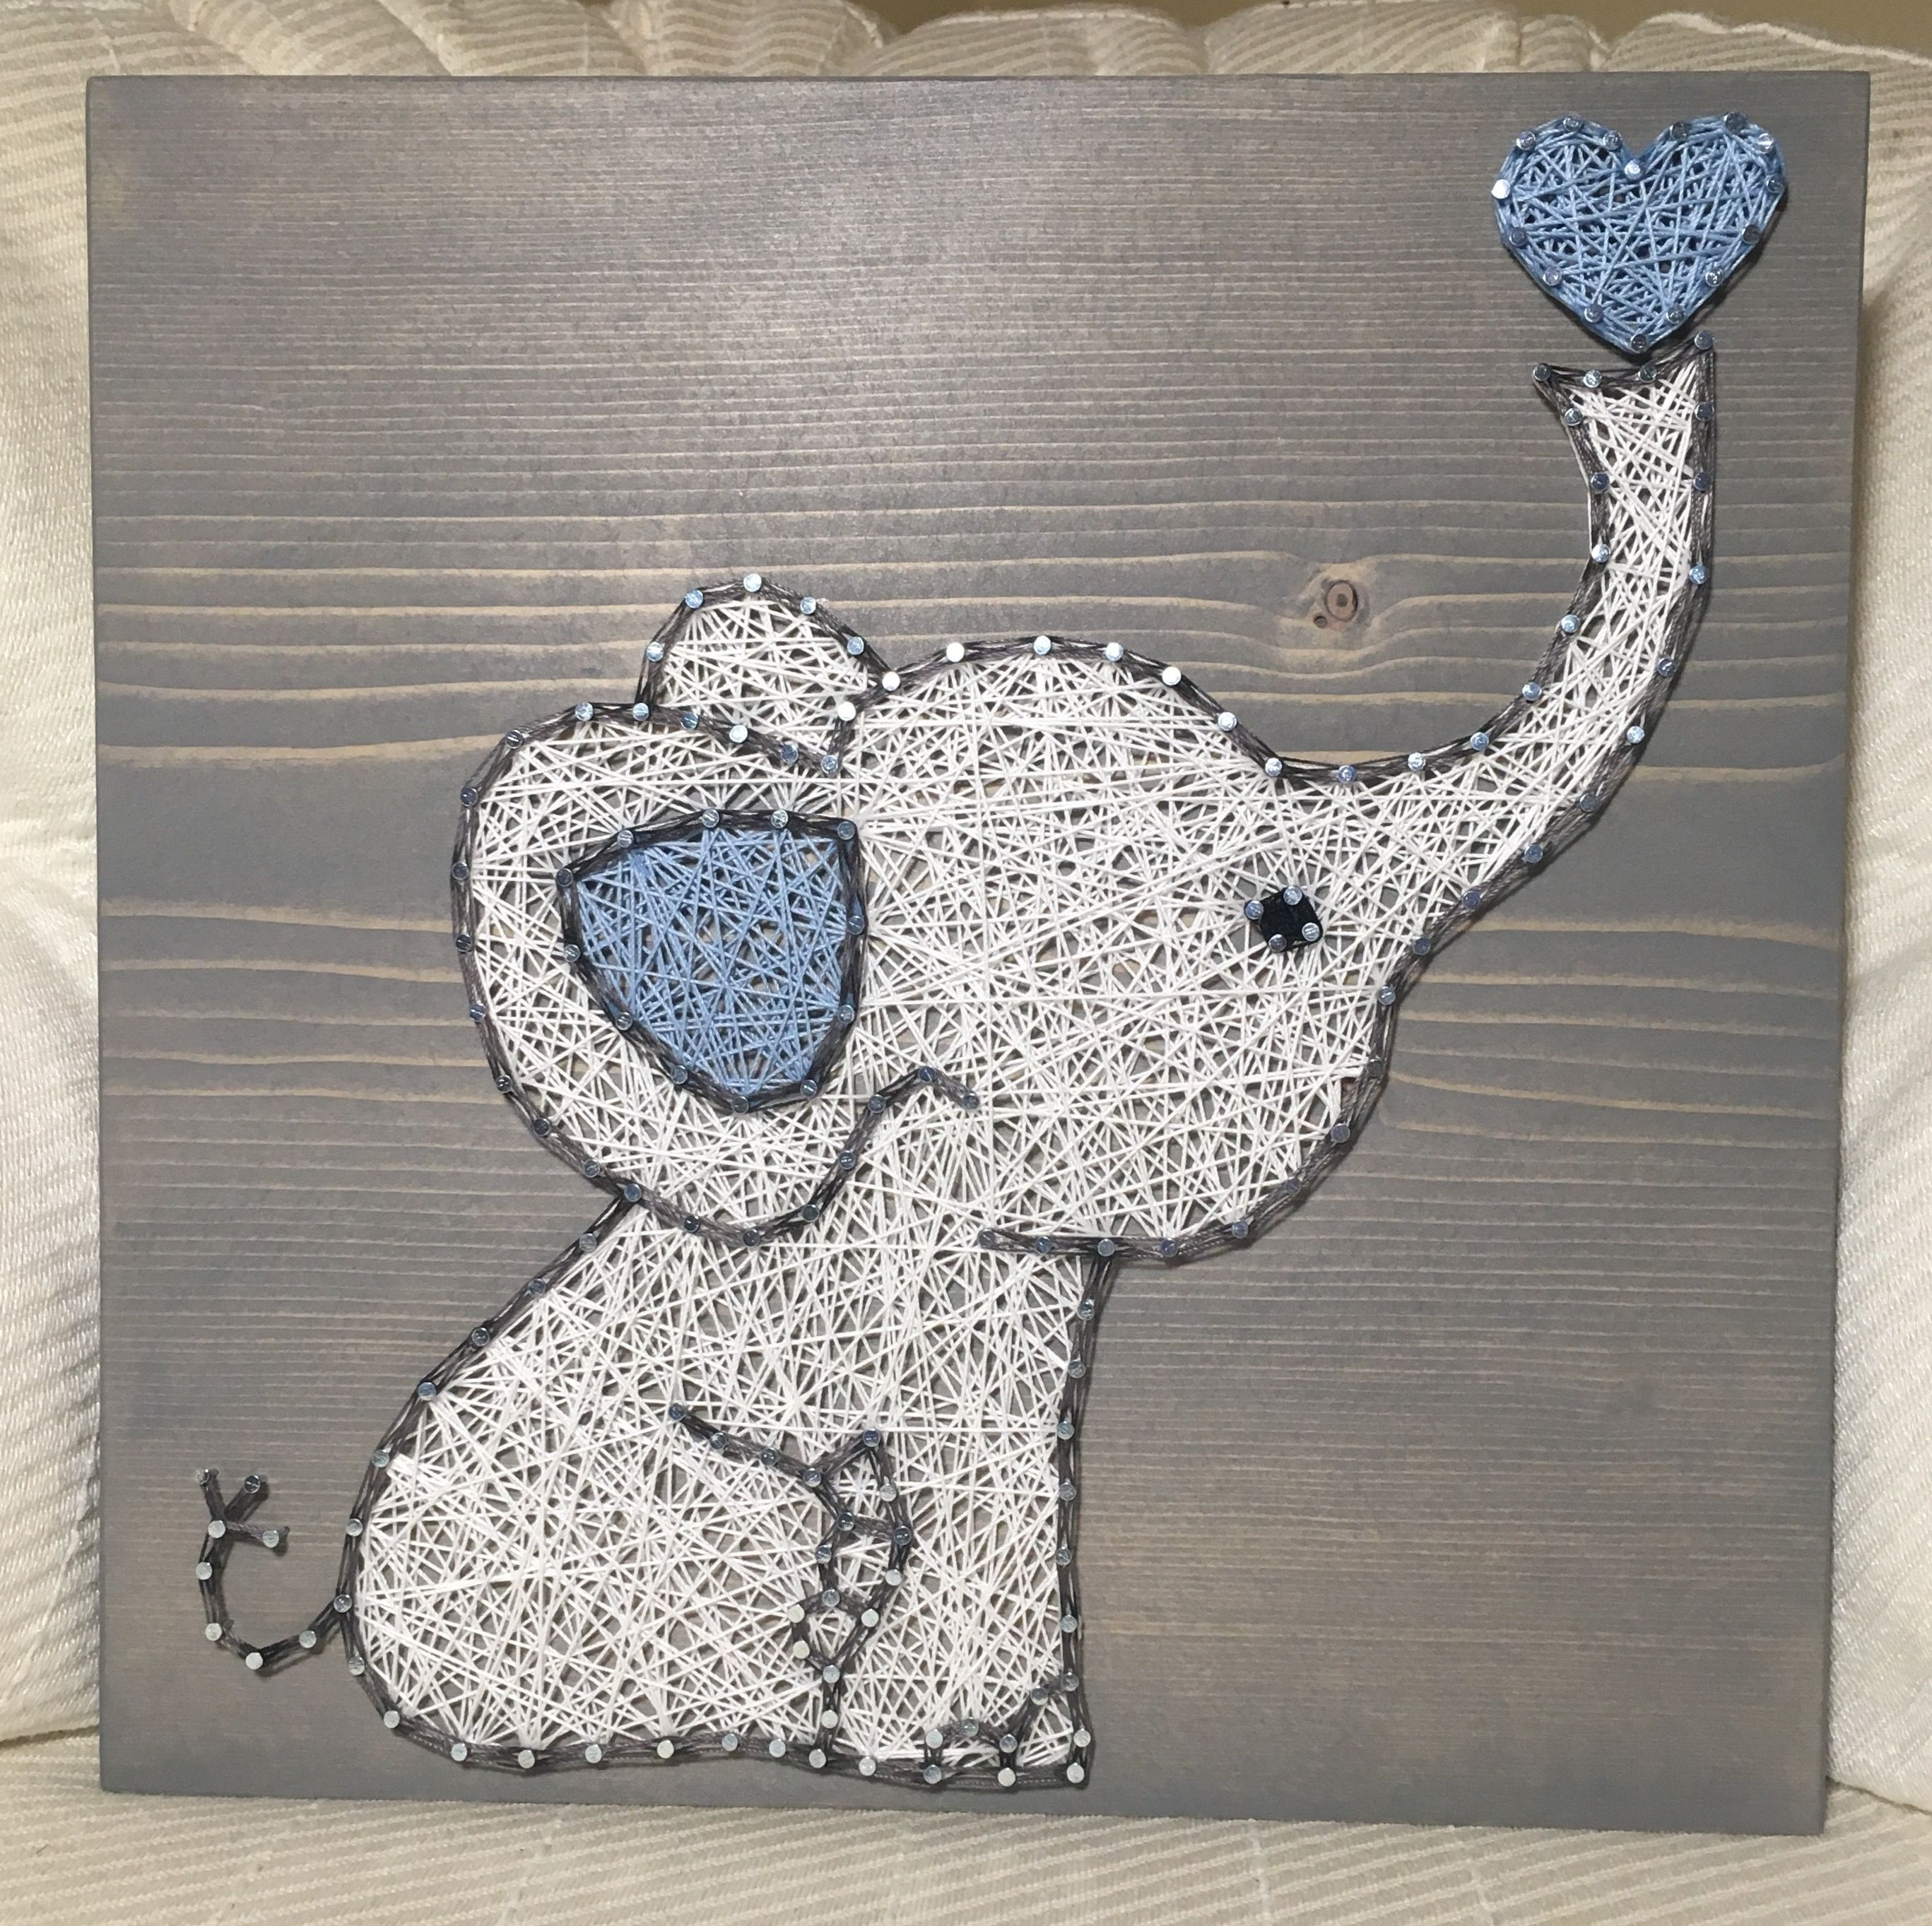 Baby Elephant Love String Art Nursery Order From KiwiStrings On Etsy Kiwistringsetsy